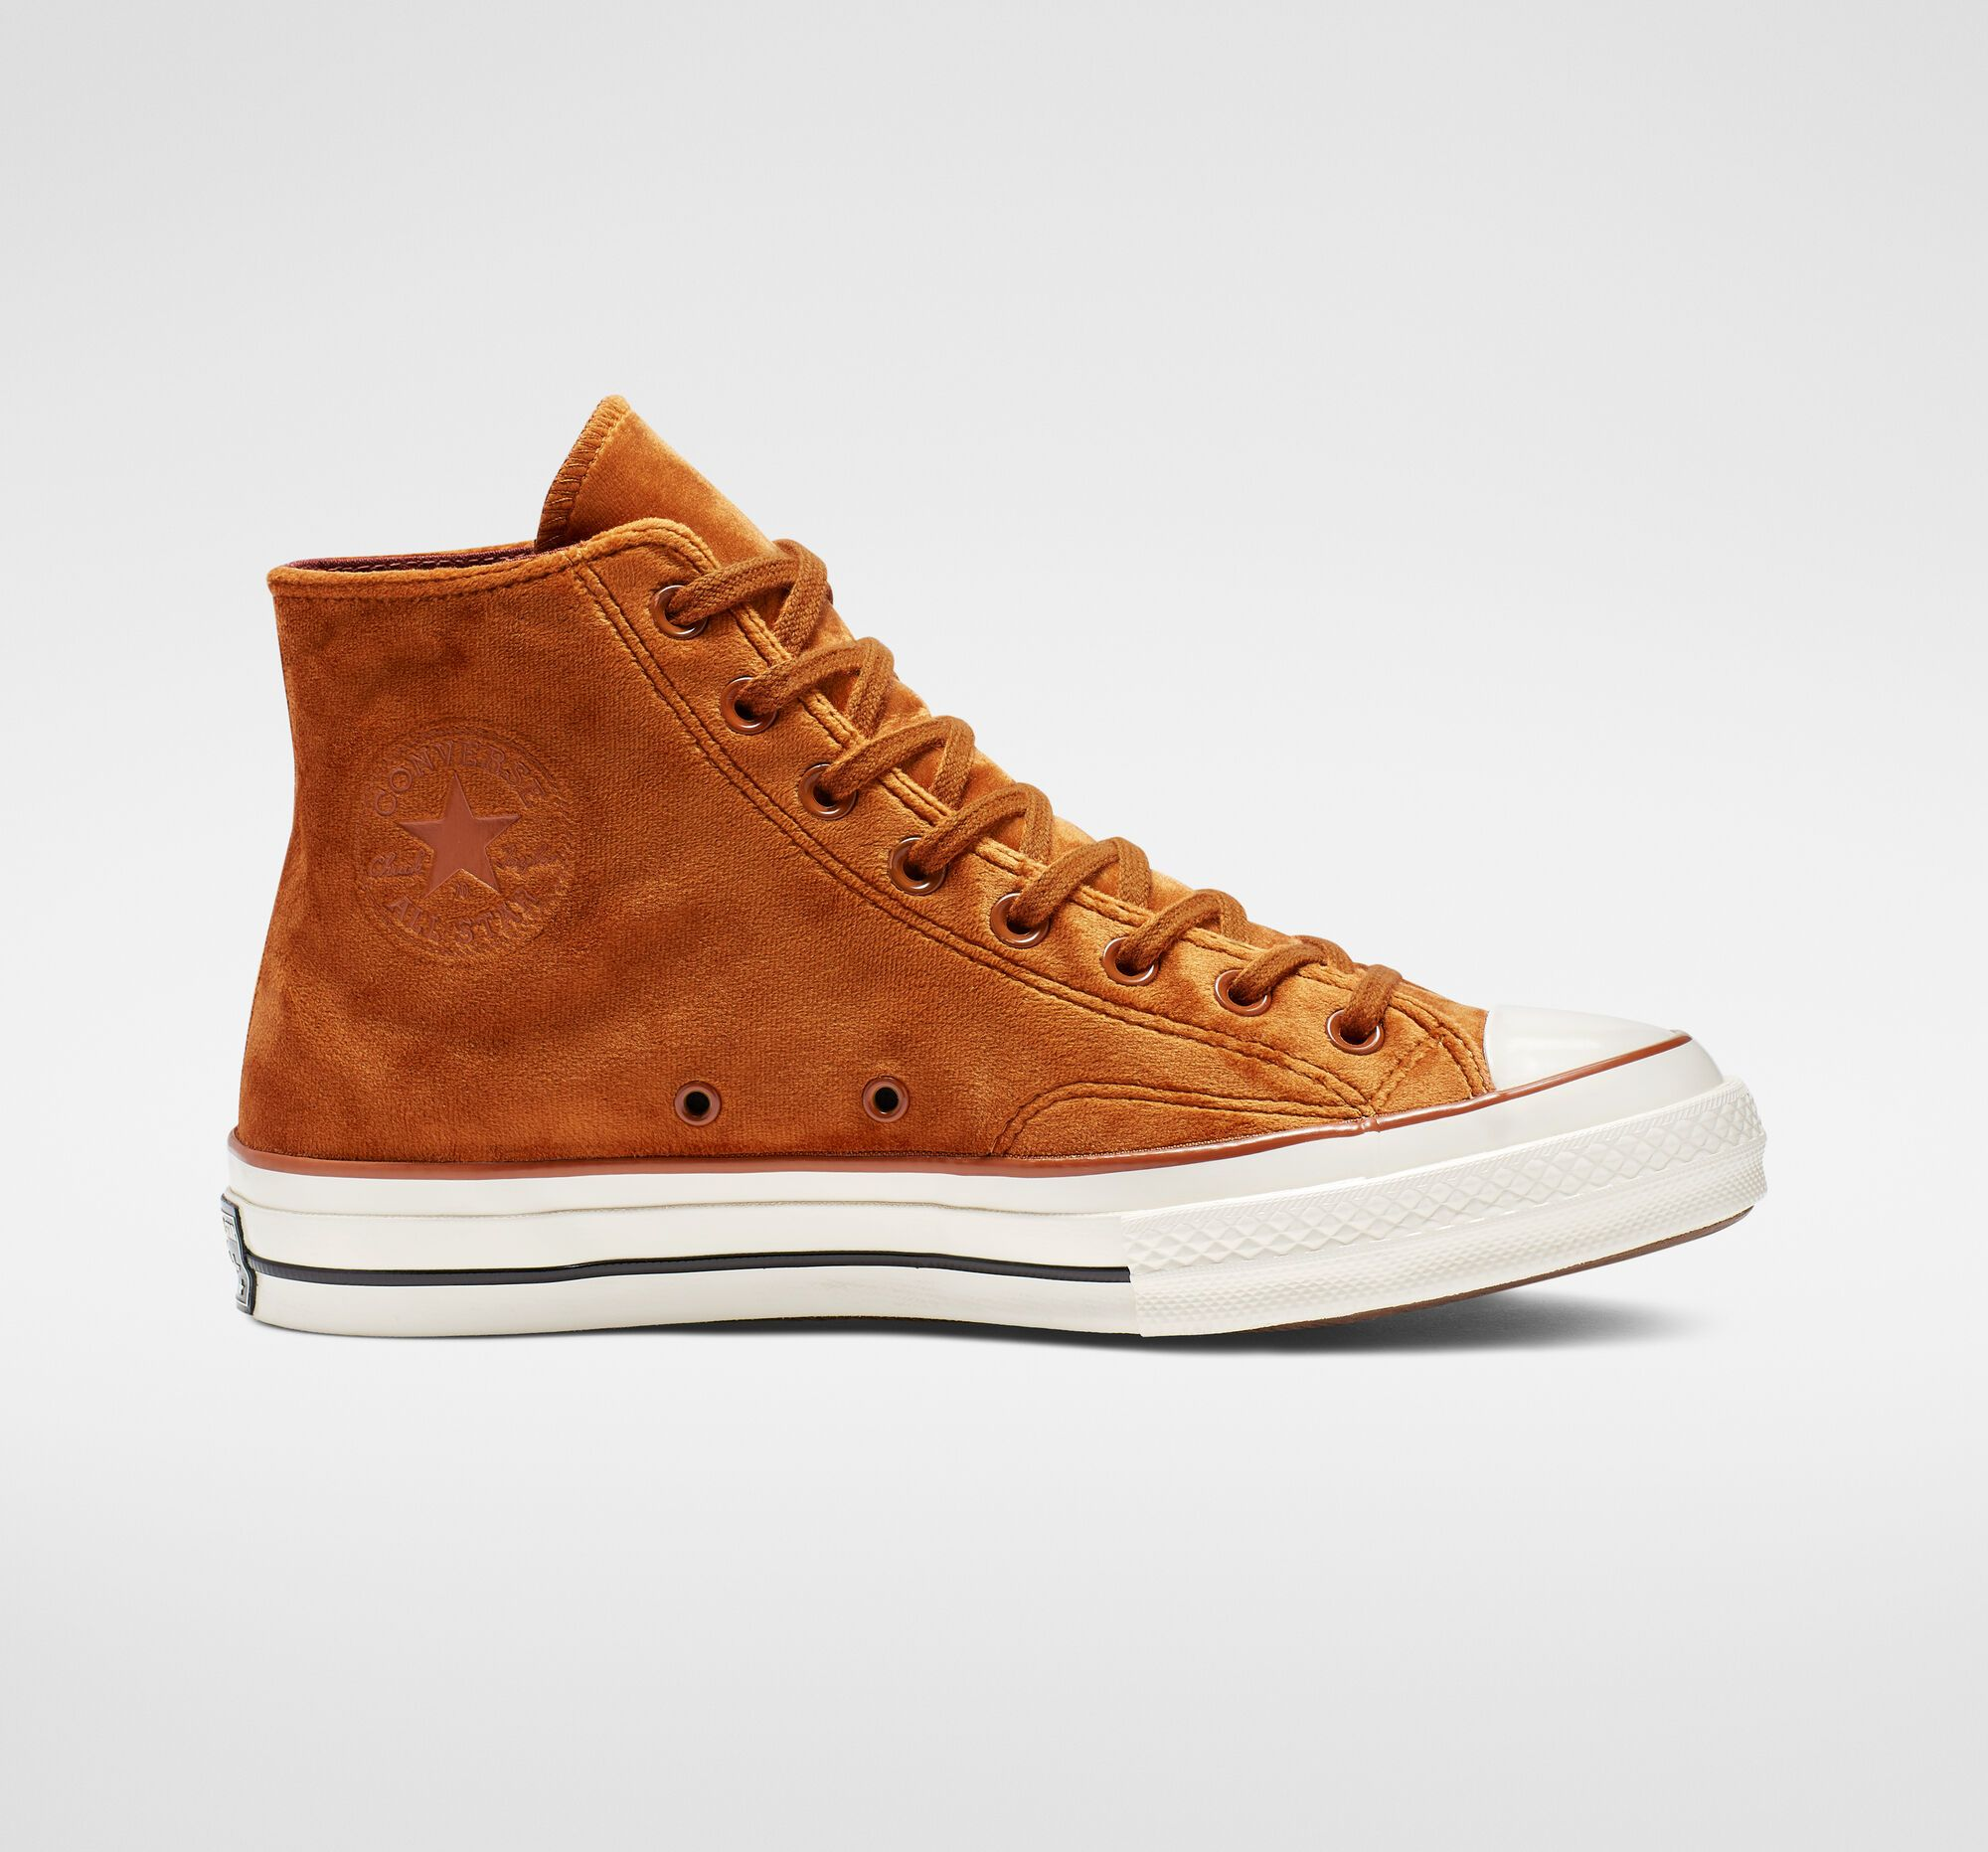 Chuck 70 Velvet High Top Unisex Shoe (With images ...